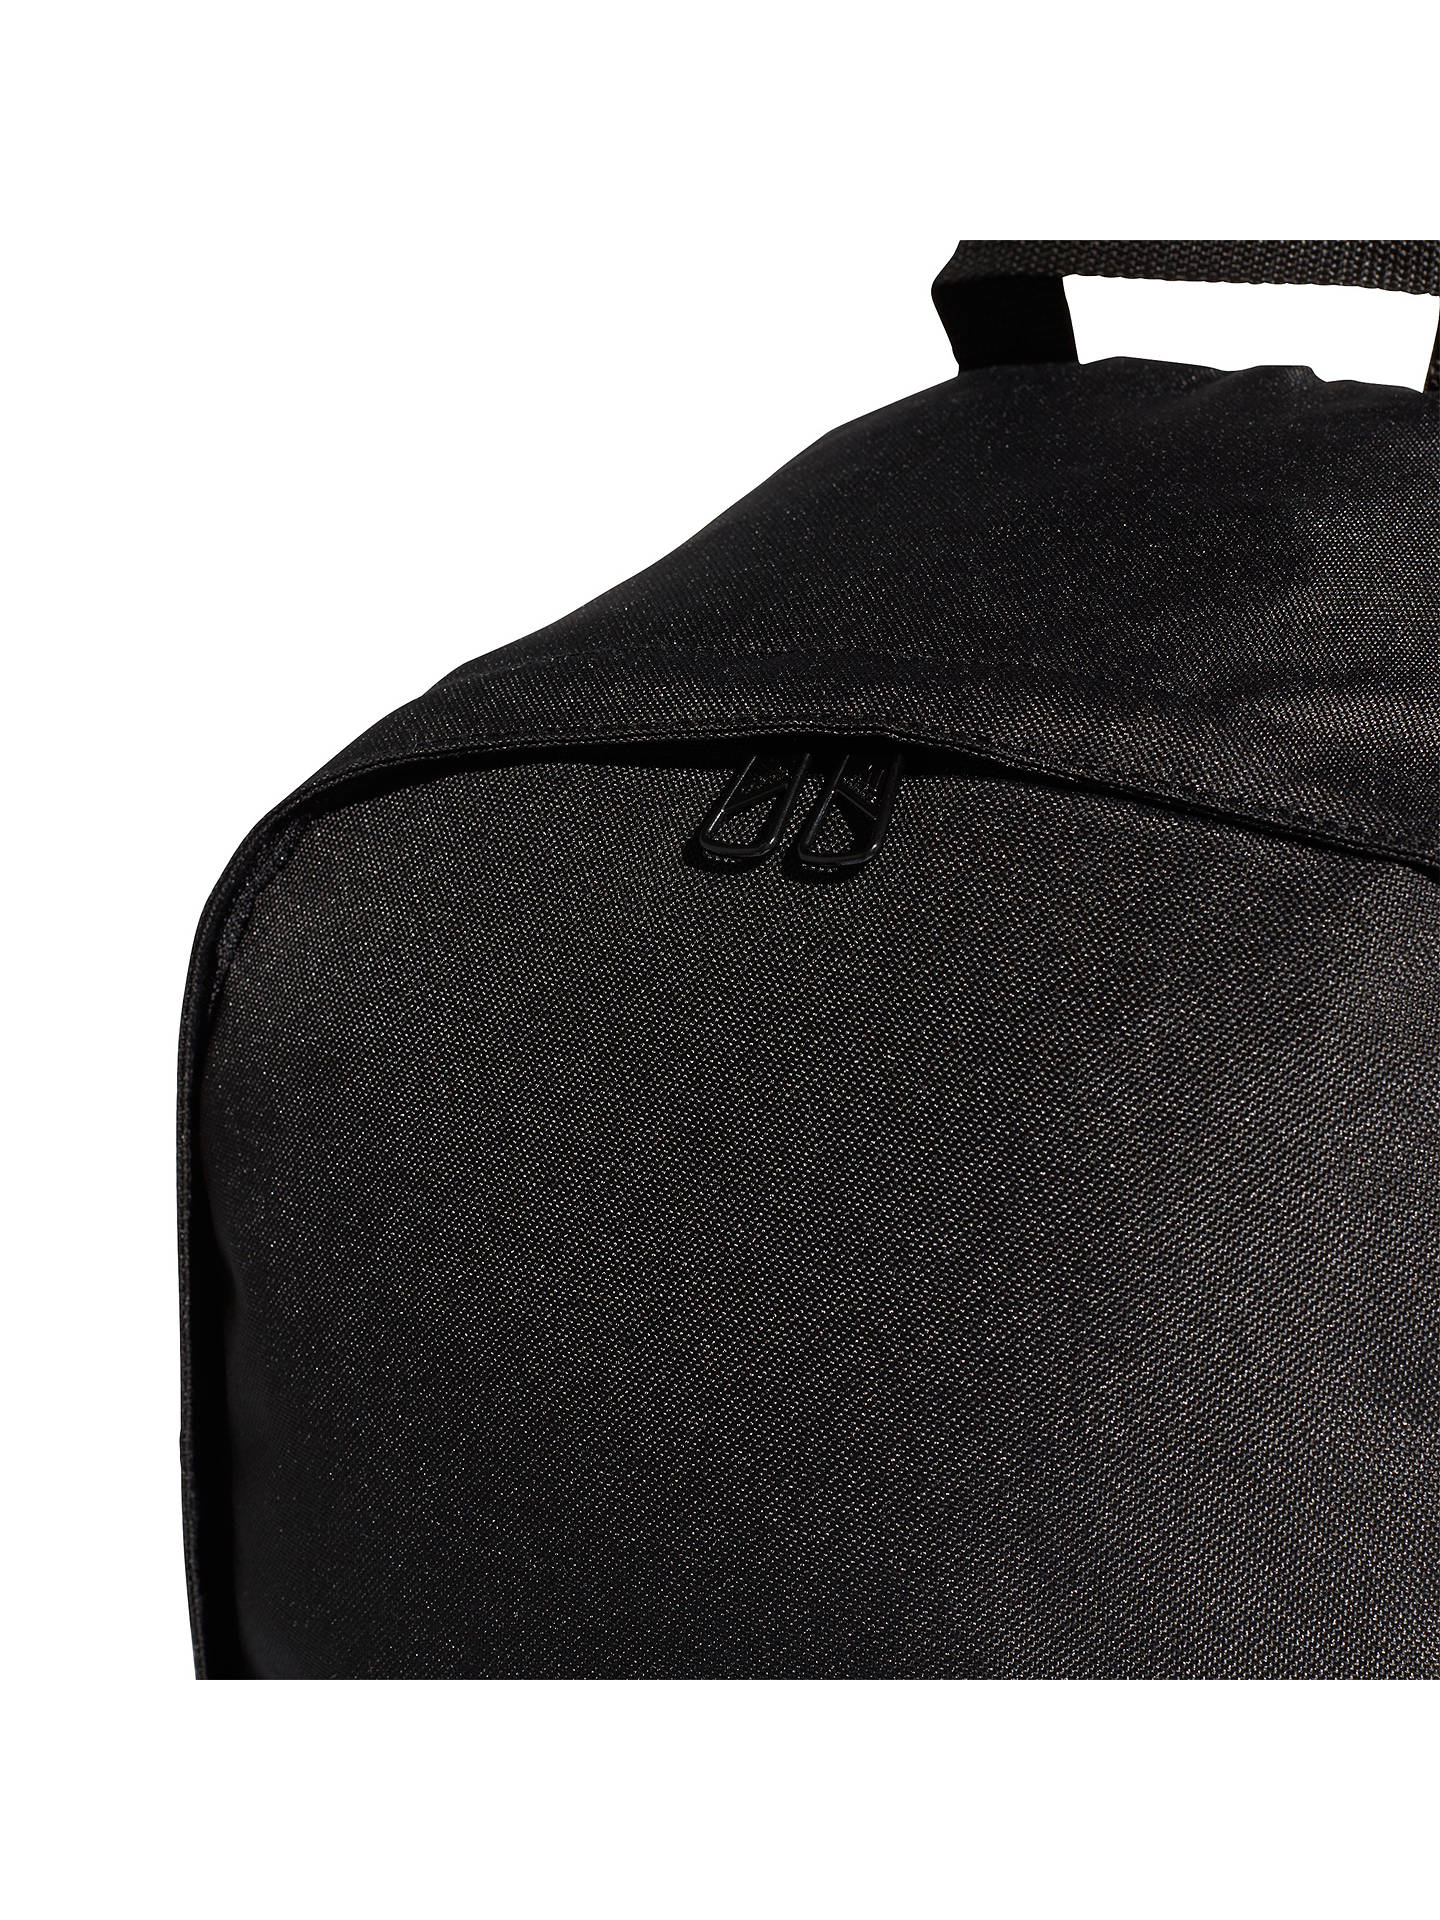 Buyadidas Classic Backpack, Black Online at johnlewis.com